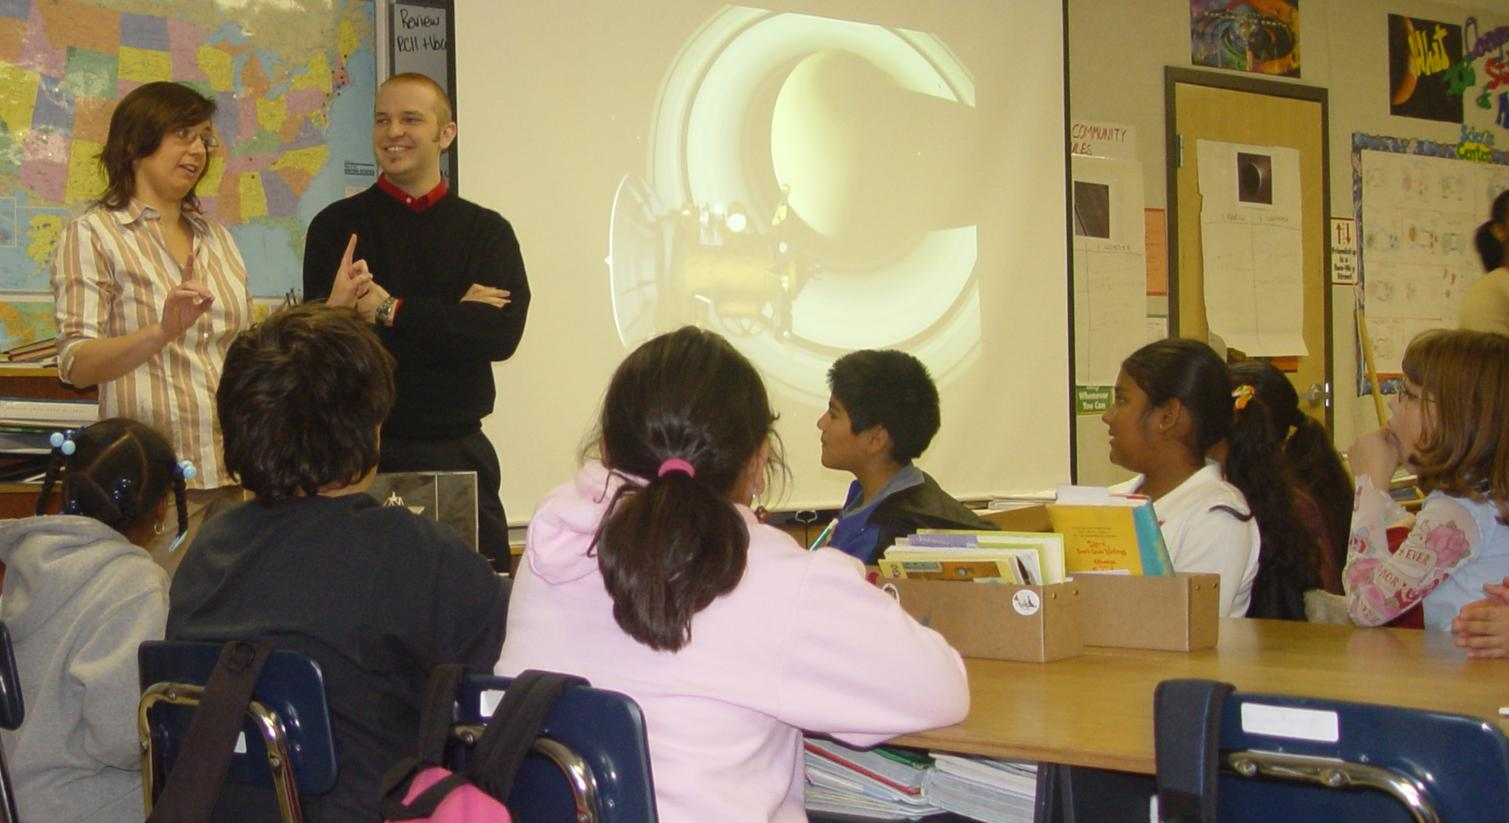 Two Cassini Science team members talking to students